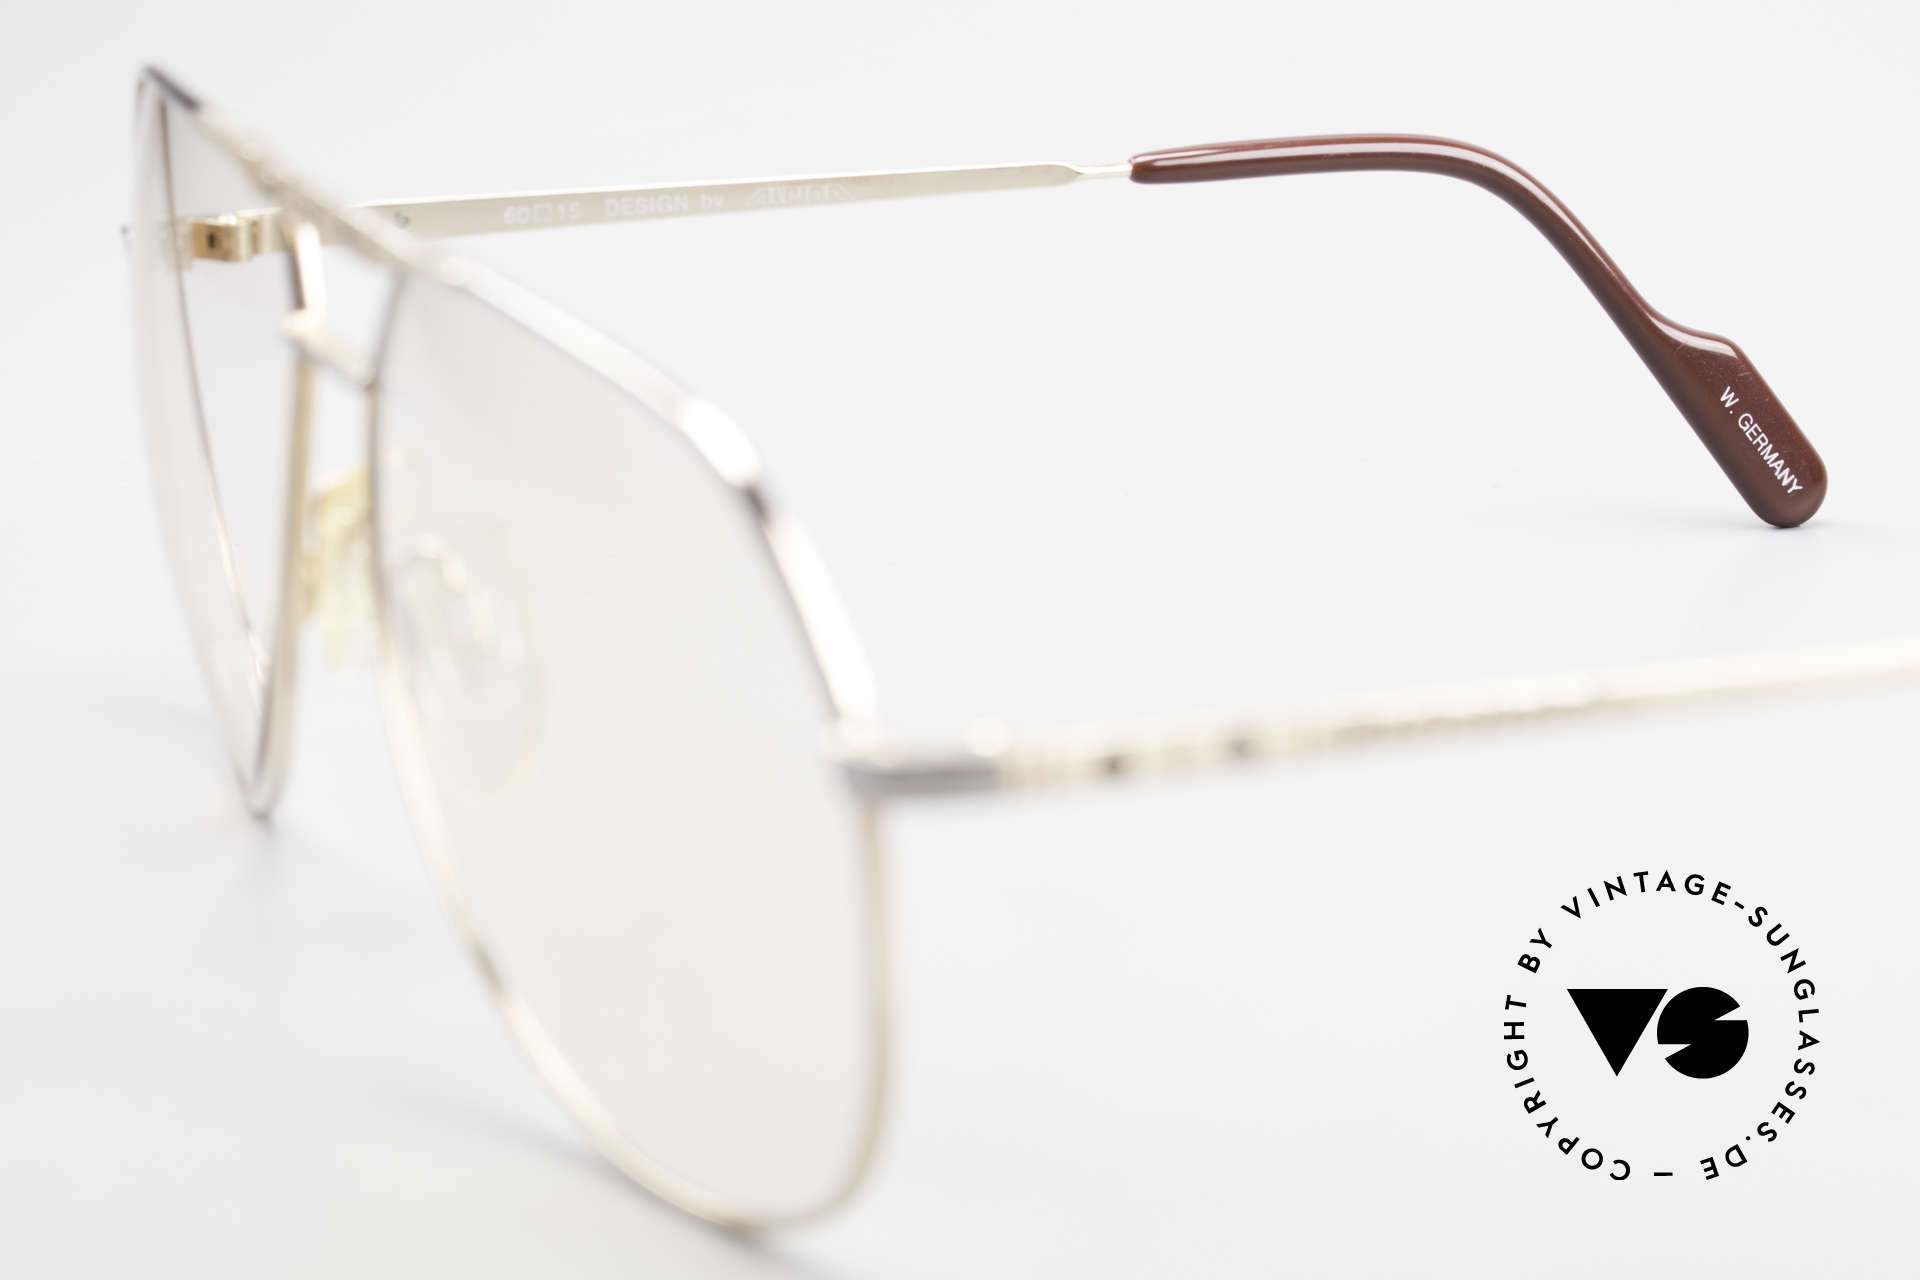 Alpina FM27 Classic Aviator Eyeglasses 80s, clear demo lenses can be replaced with prescriptions, Made for Men